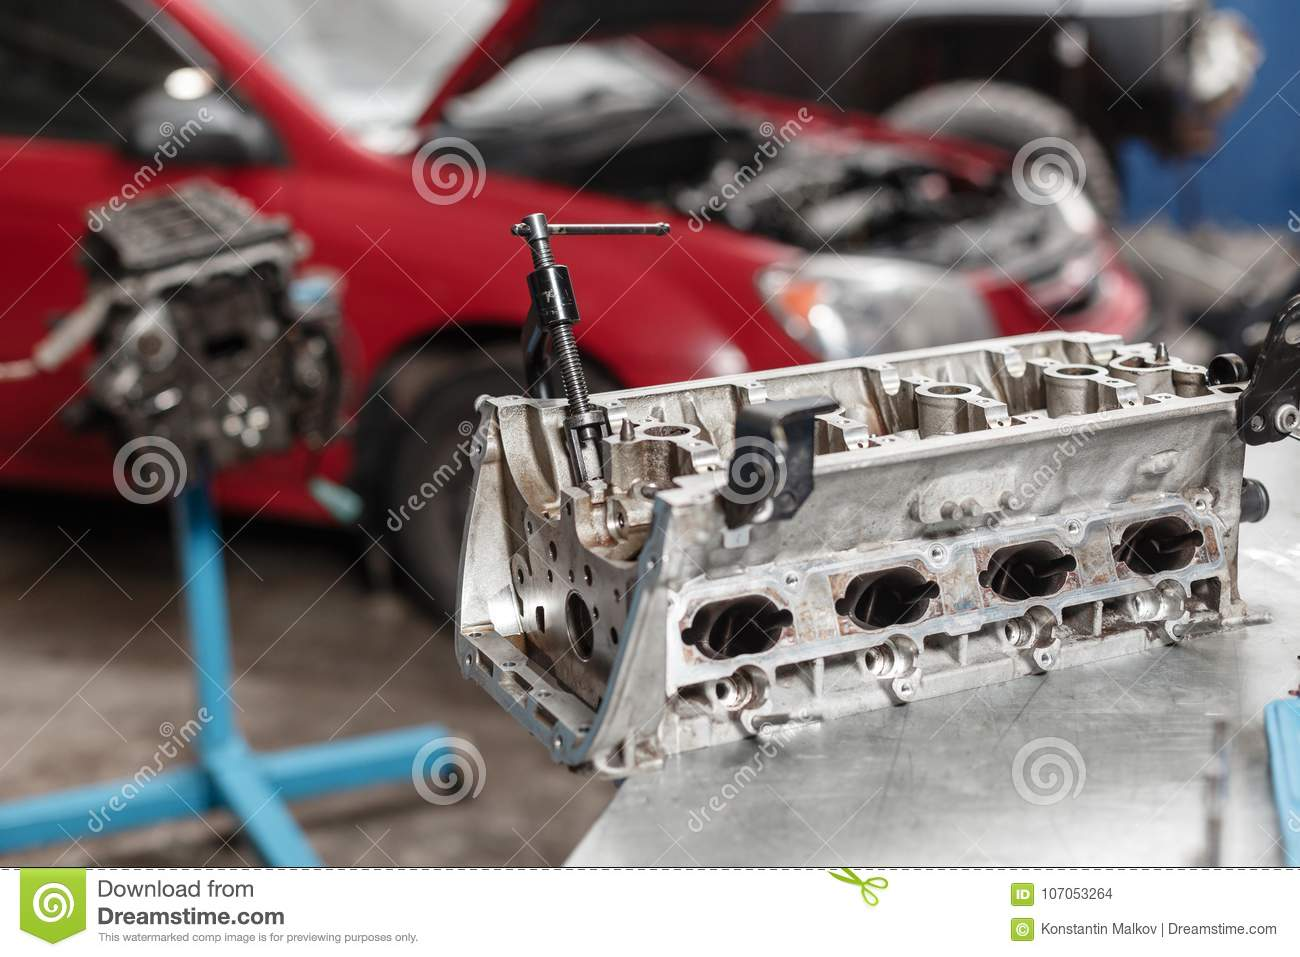 hight resolution of engine block on a repair stand with piston and connecting rod of automotive